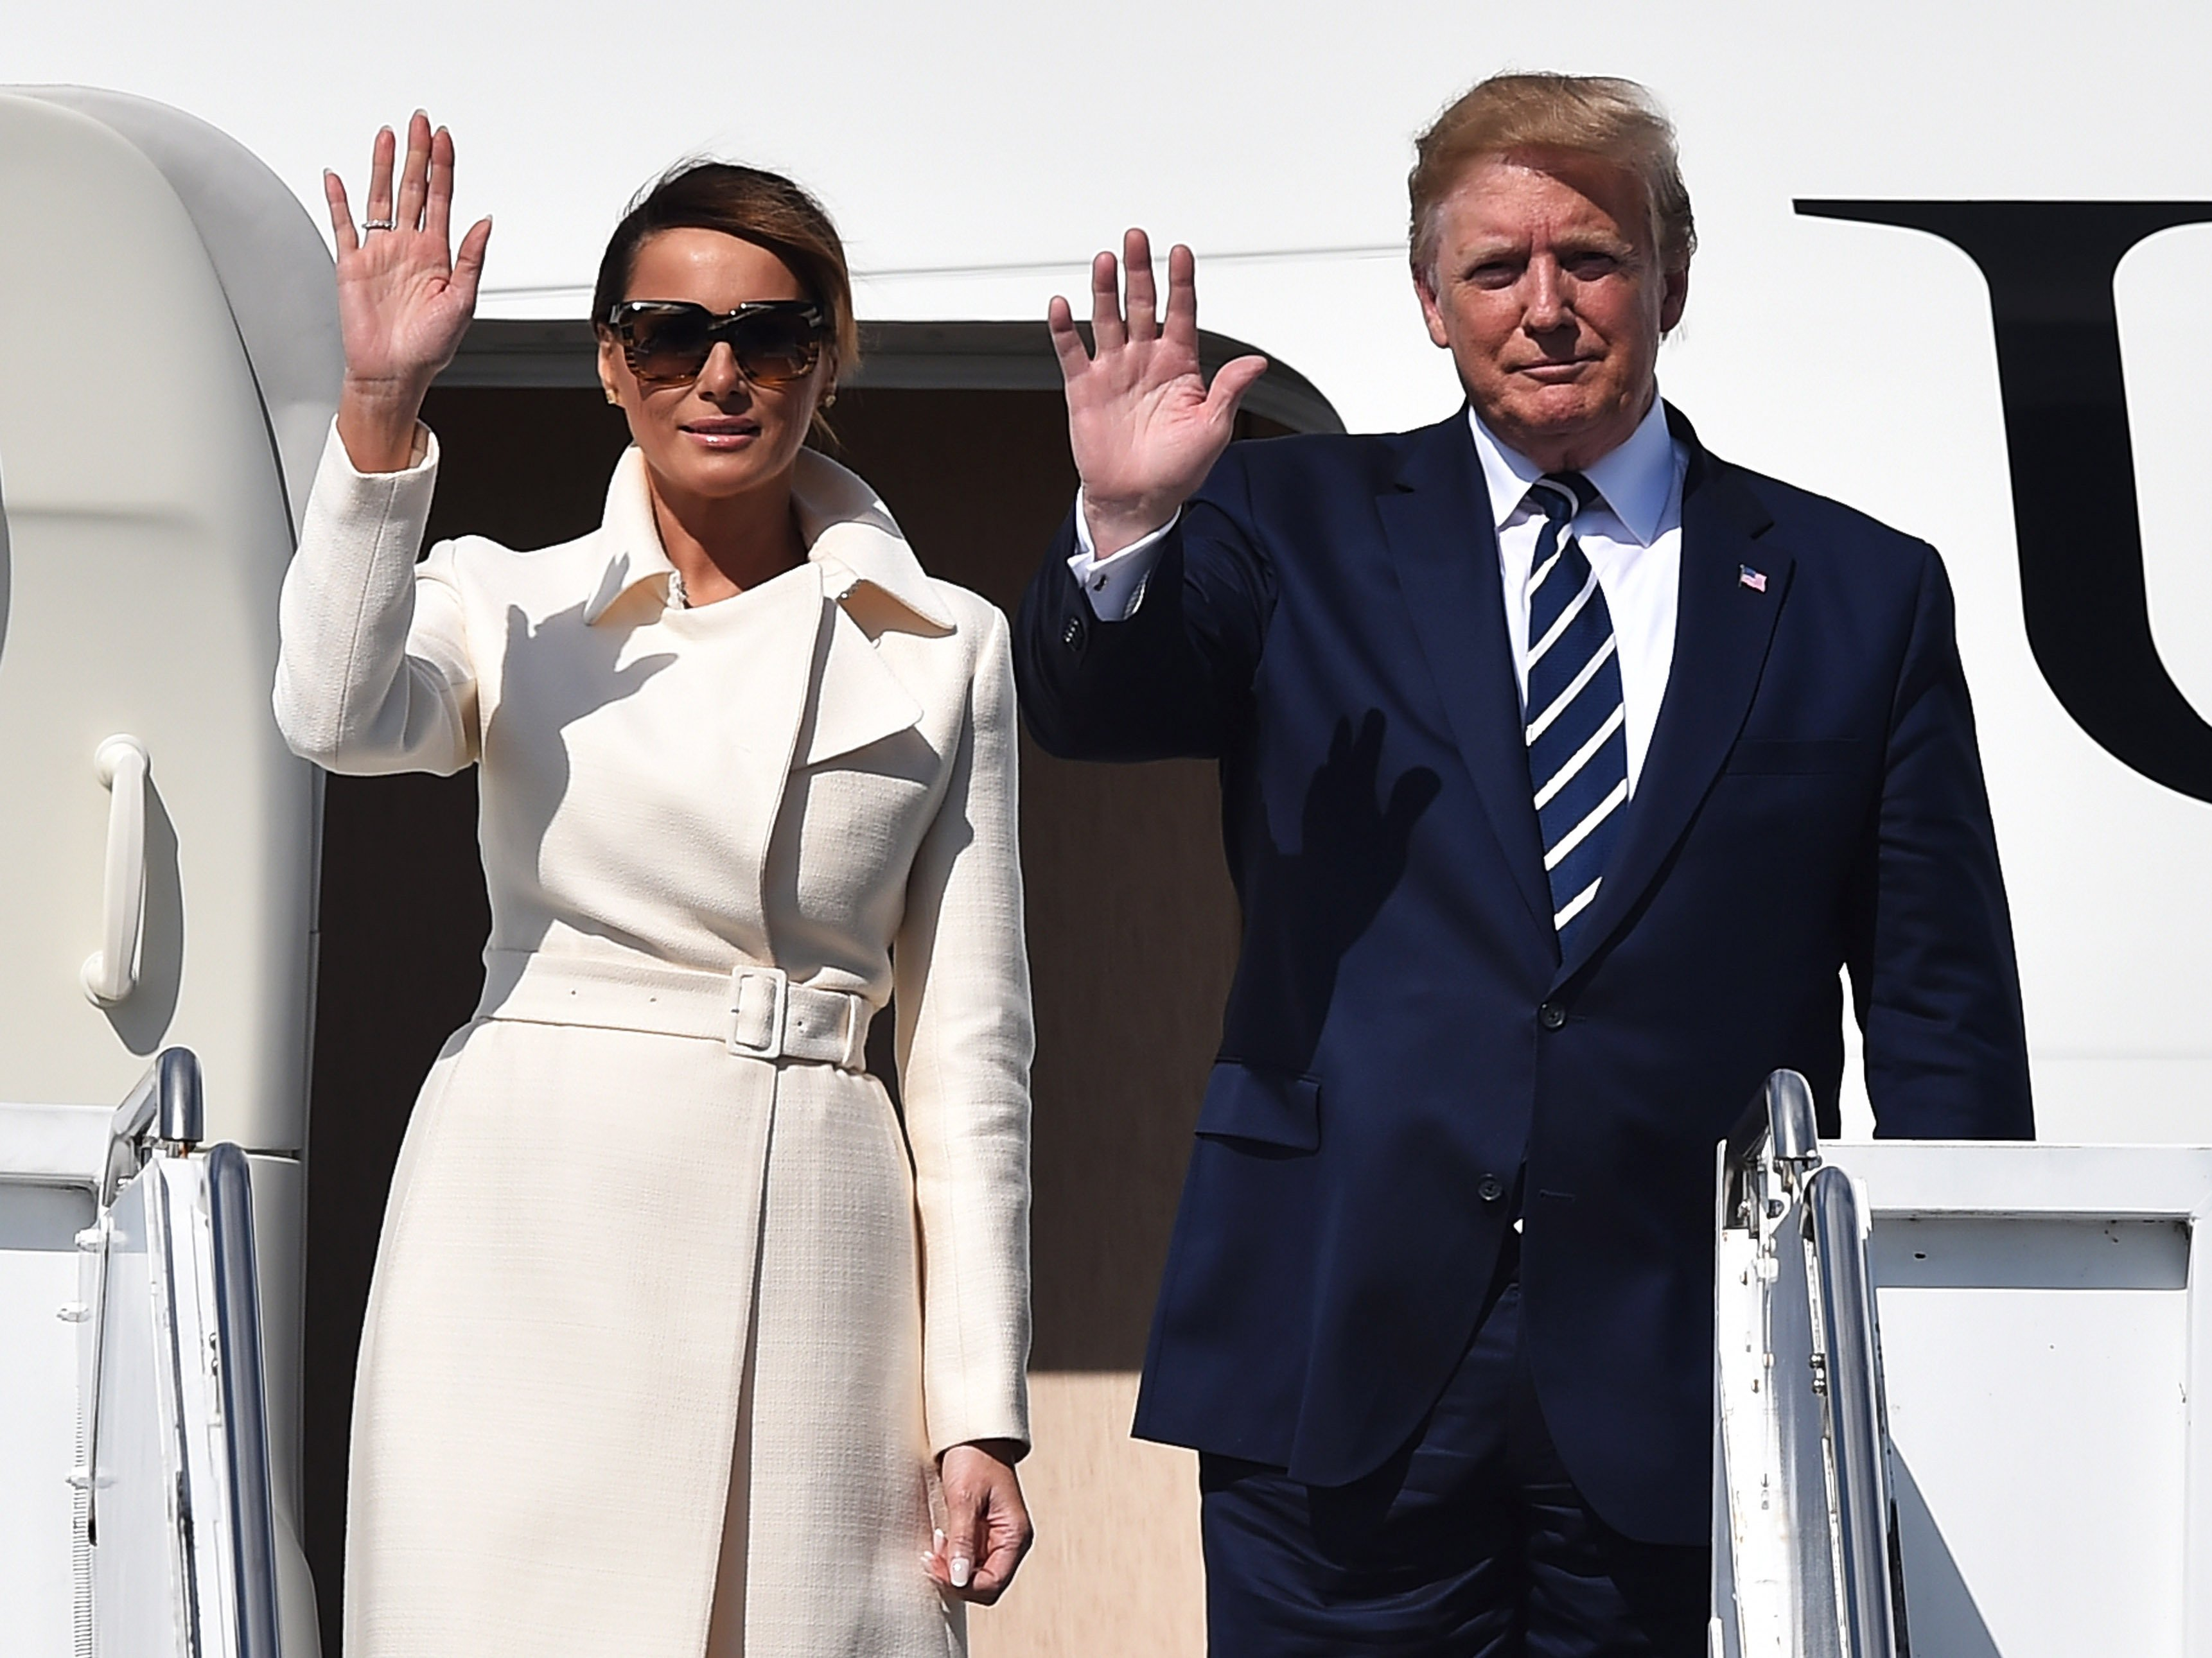 President Donald Trump and his wife Melania Trump arrive in Portsmouth for the 7th D-Day commemoration in June 2019   Photo: Getty Images